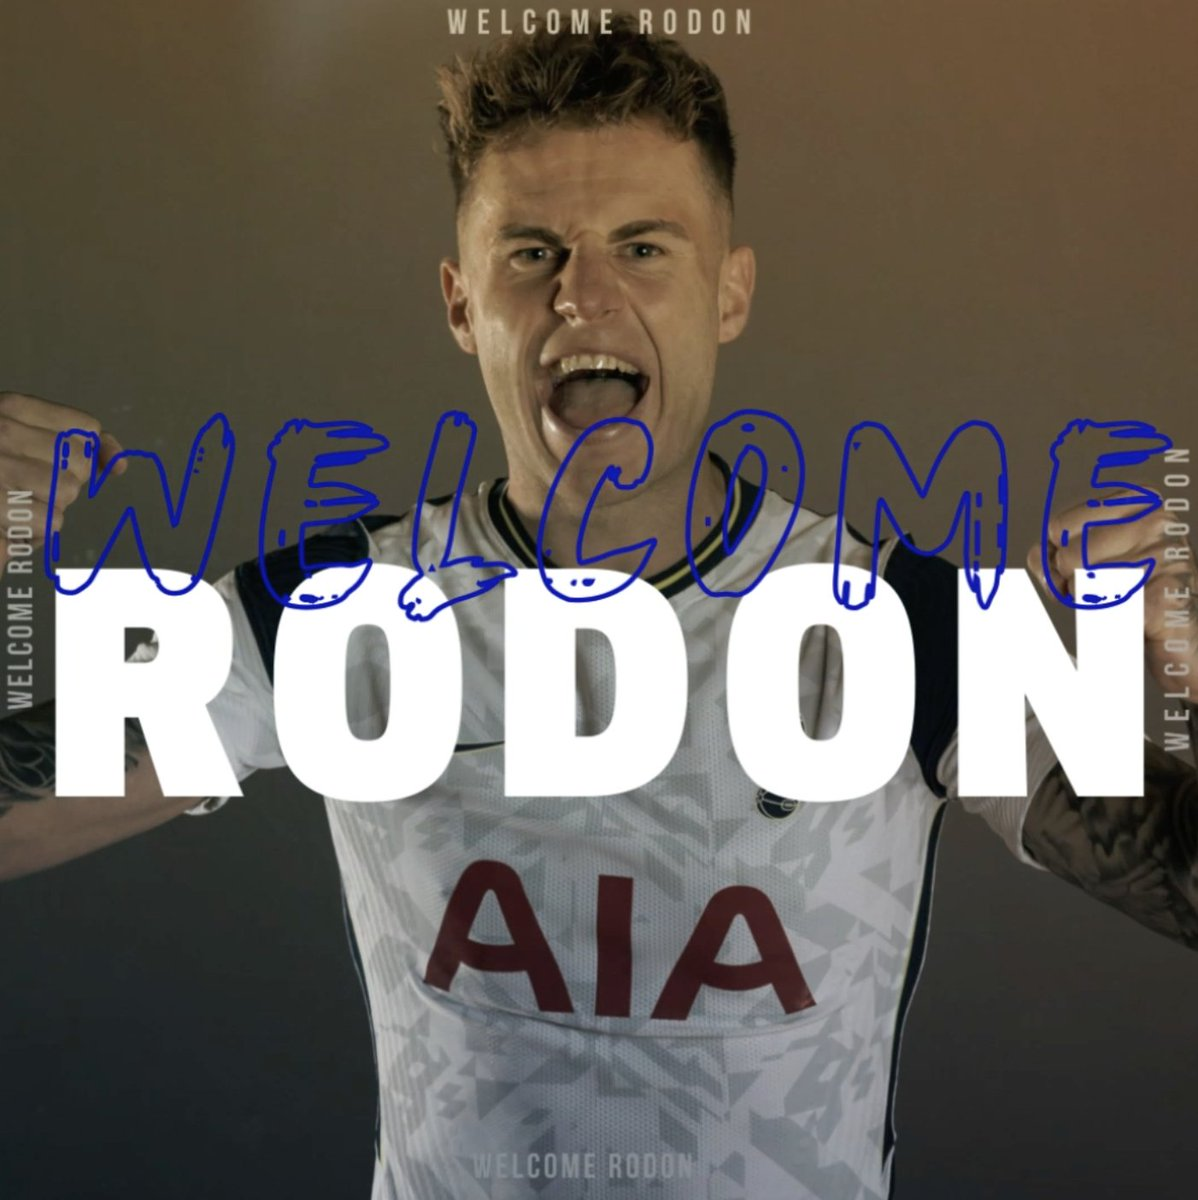 @SpursOfficial's photo on Rodon